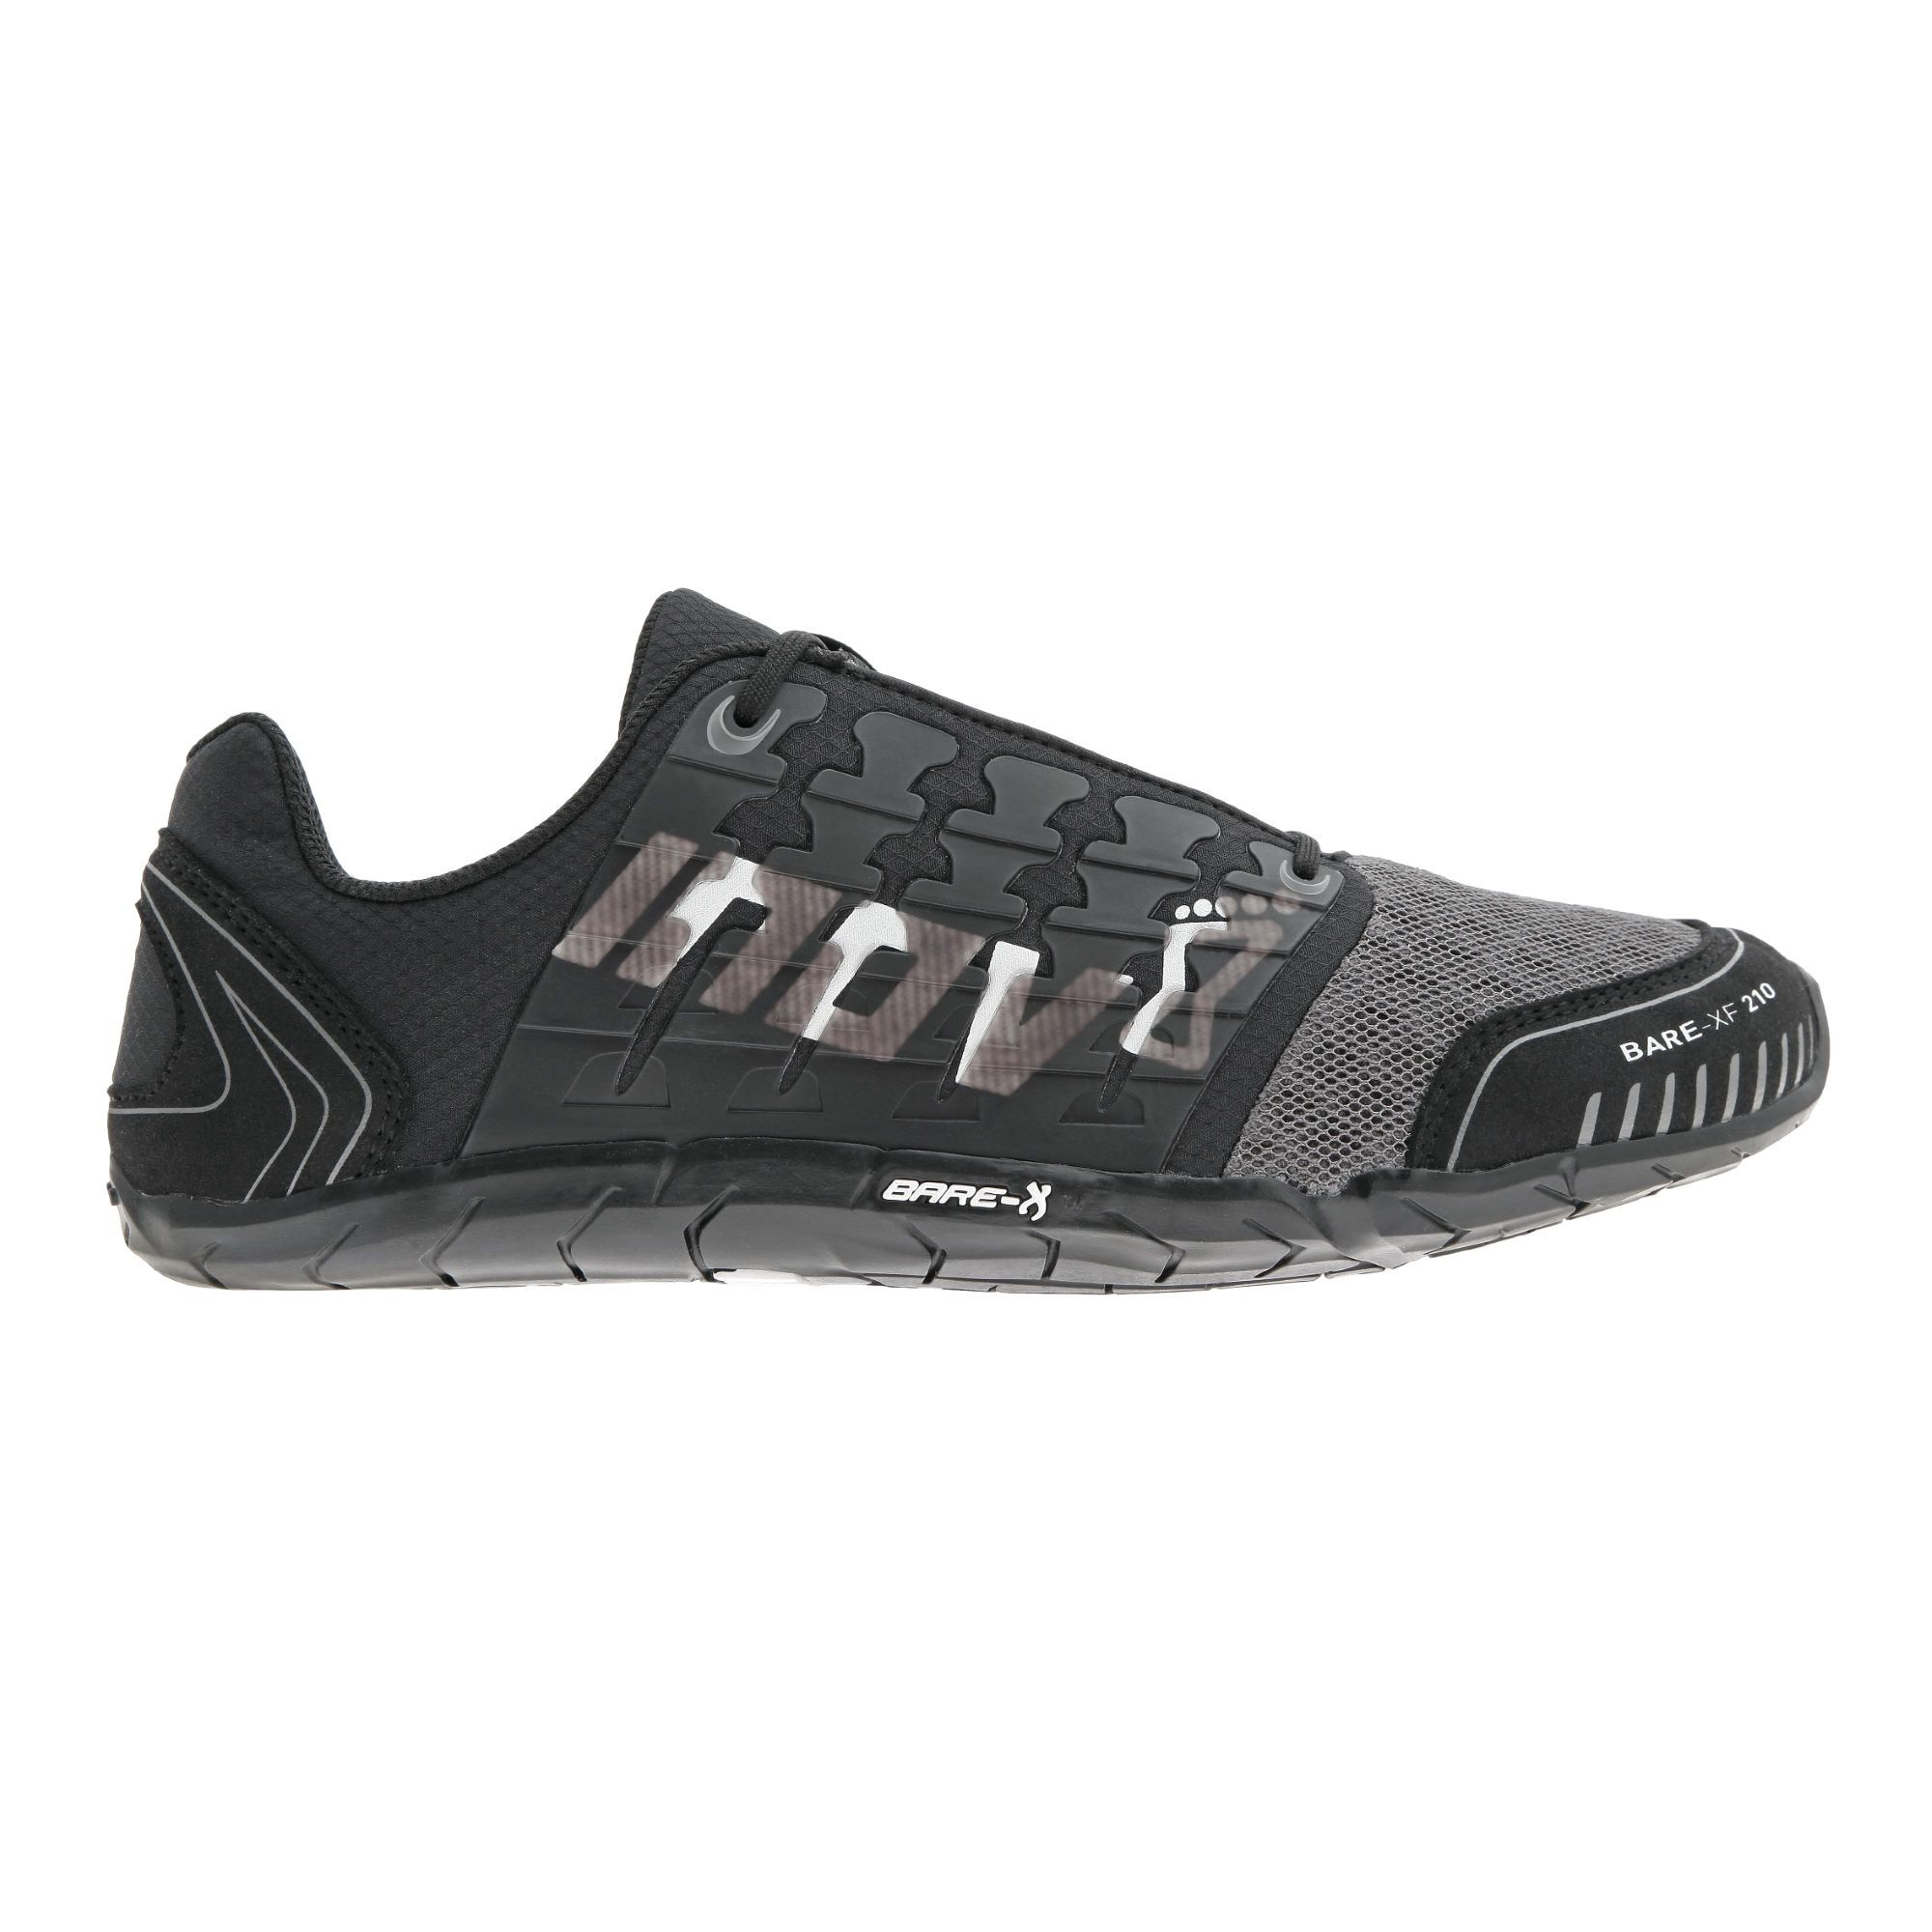 Bare-XF™ 210 Unisex Cross-Training Shoe, Black/Grey/White, M US: Built for  barefoot-feeling fitness, this versatile trainer handles everything from  rope ...